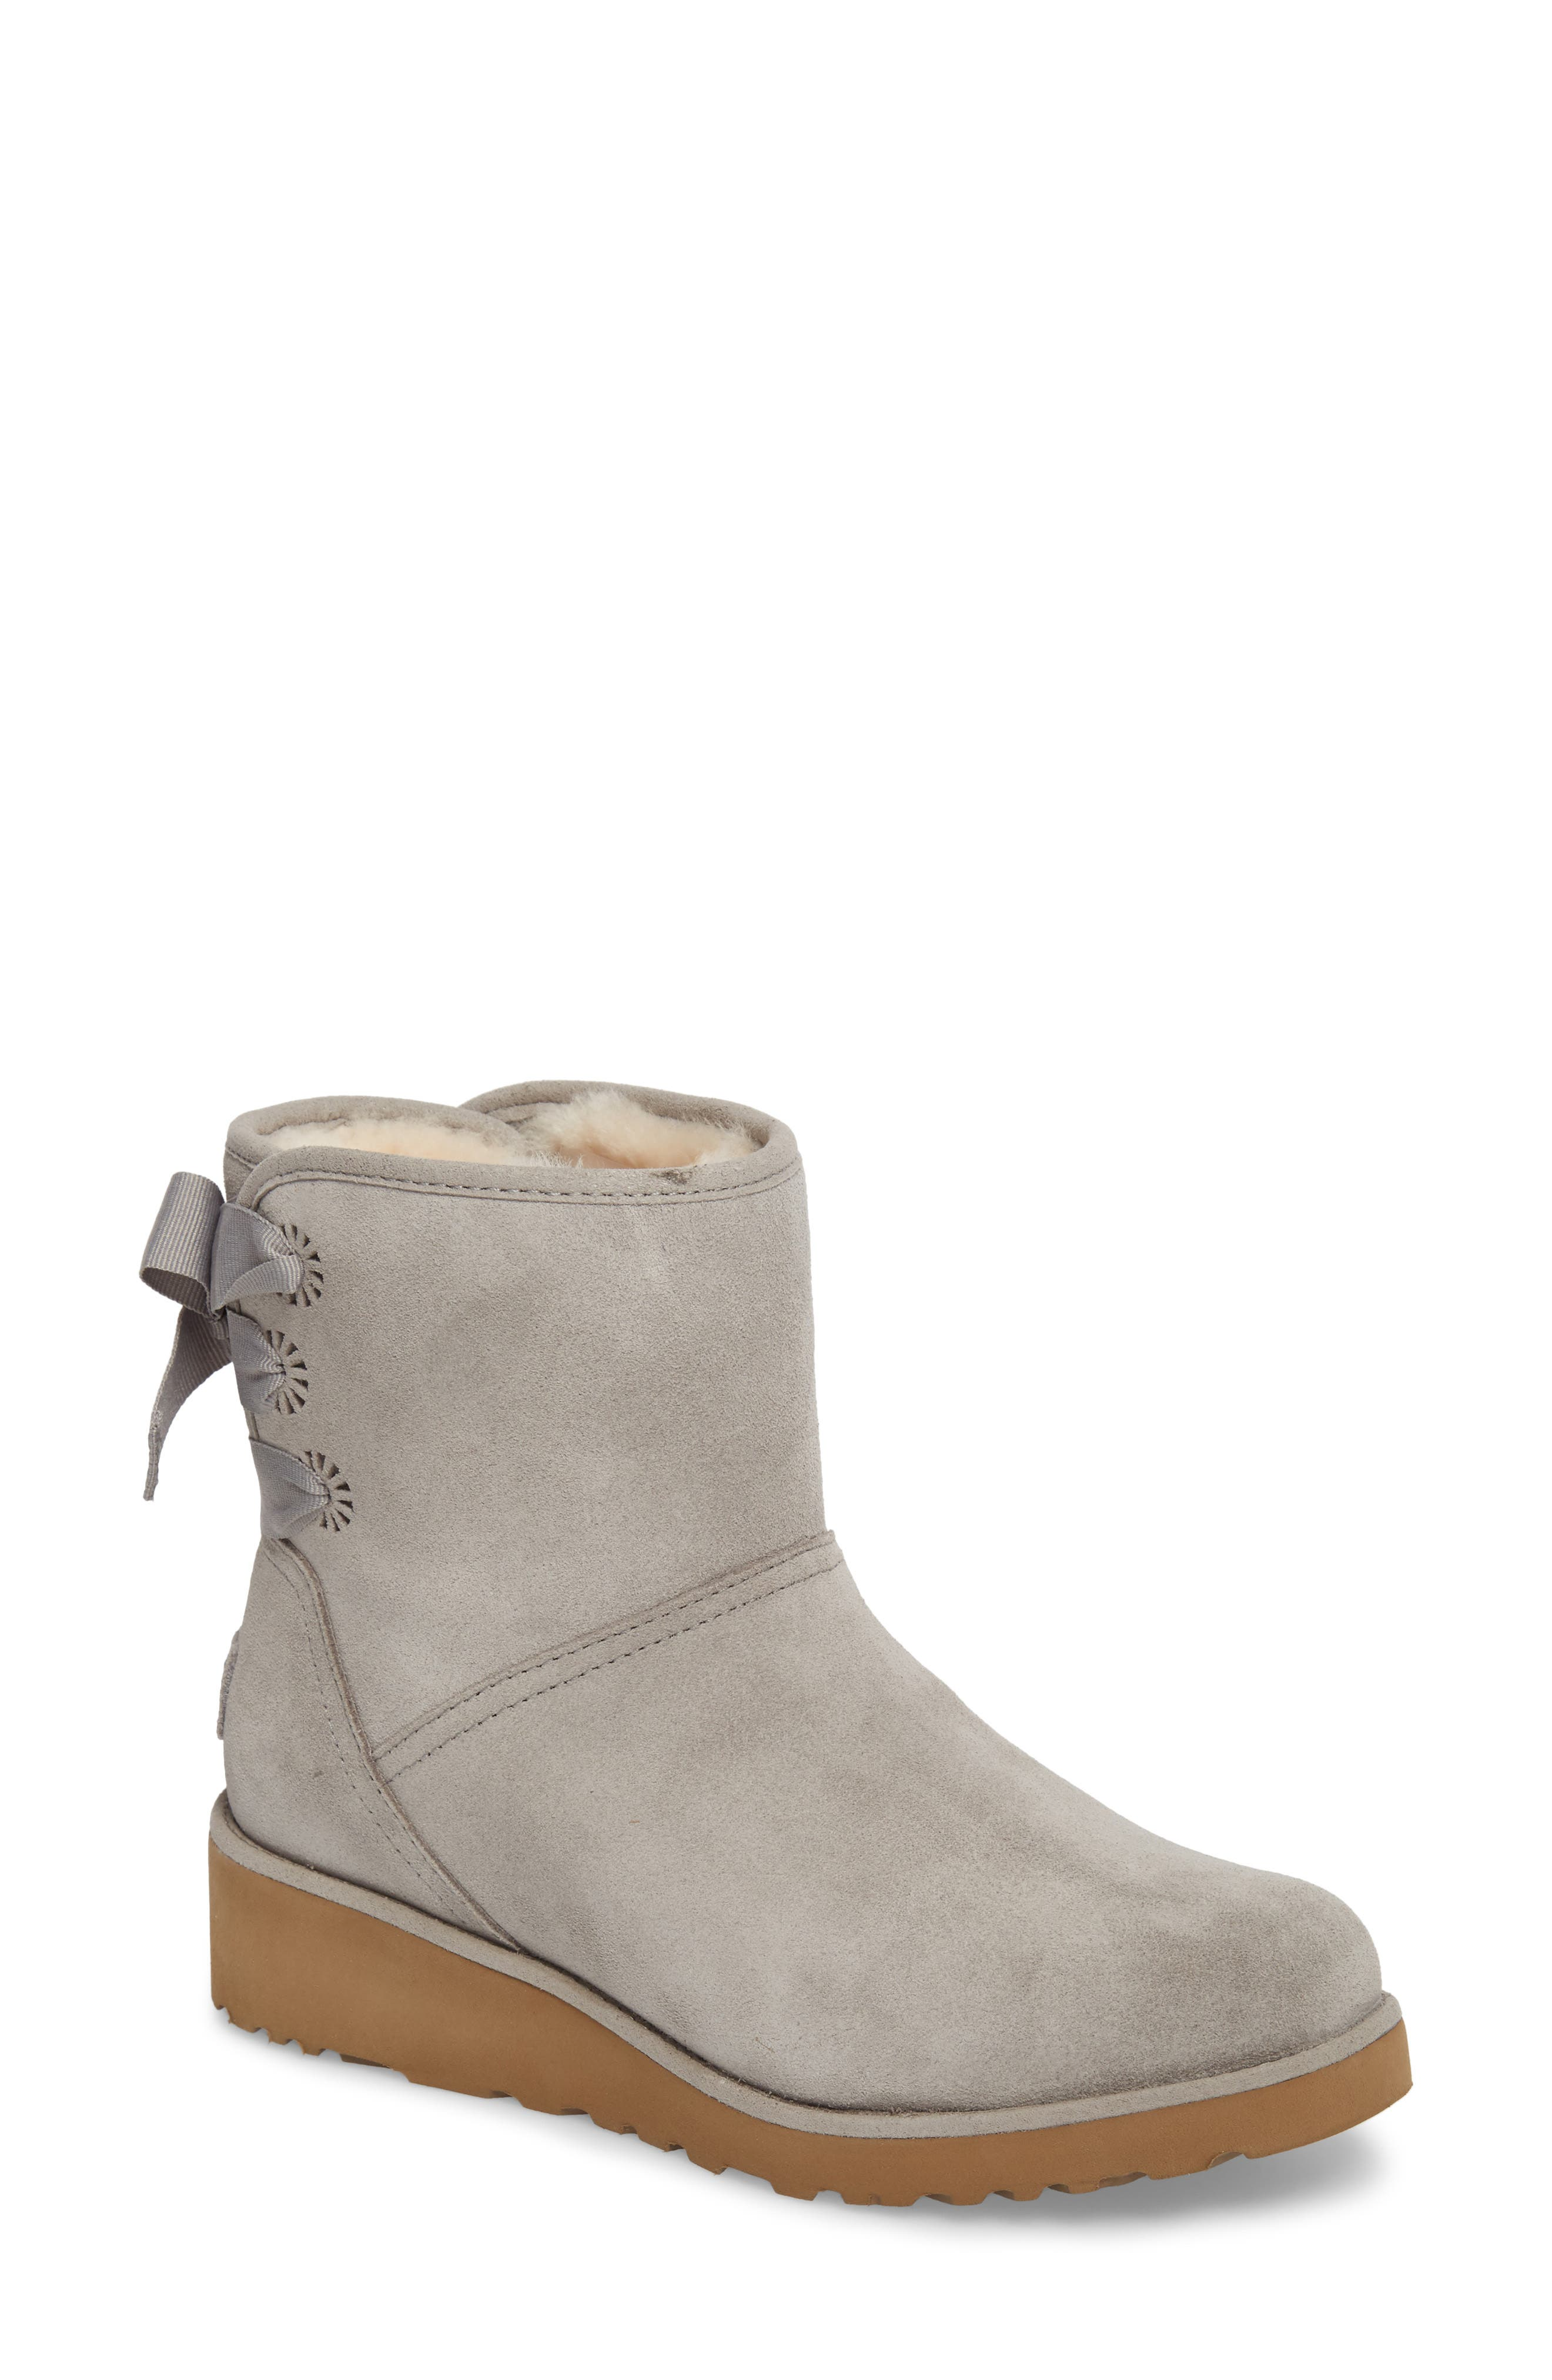 Drew Sunshine Perforated Tie Back Boot,                         Main,                         color,